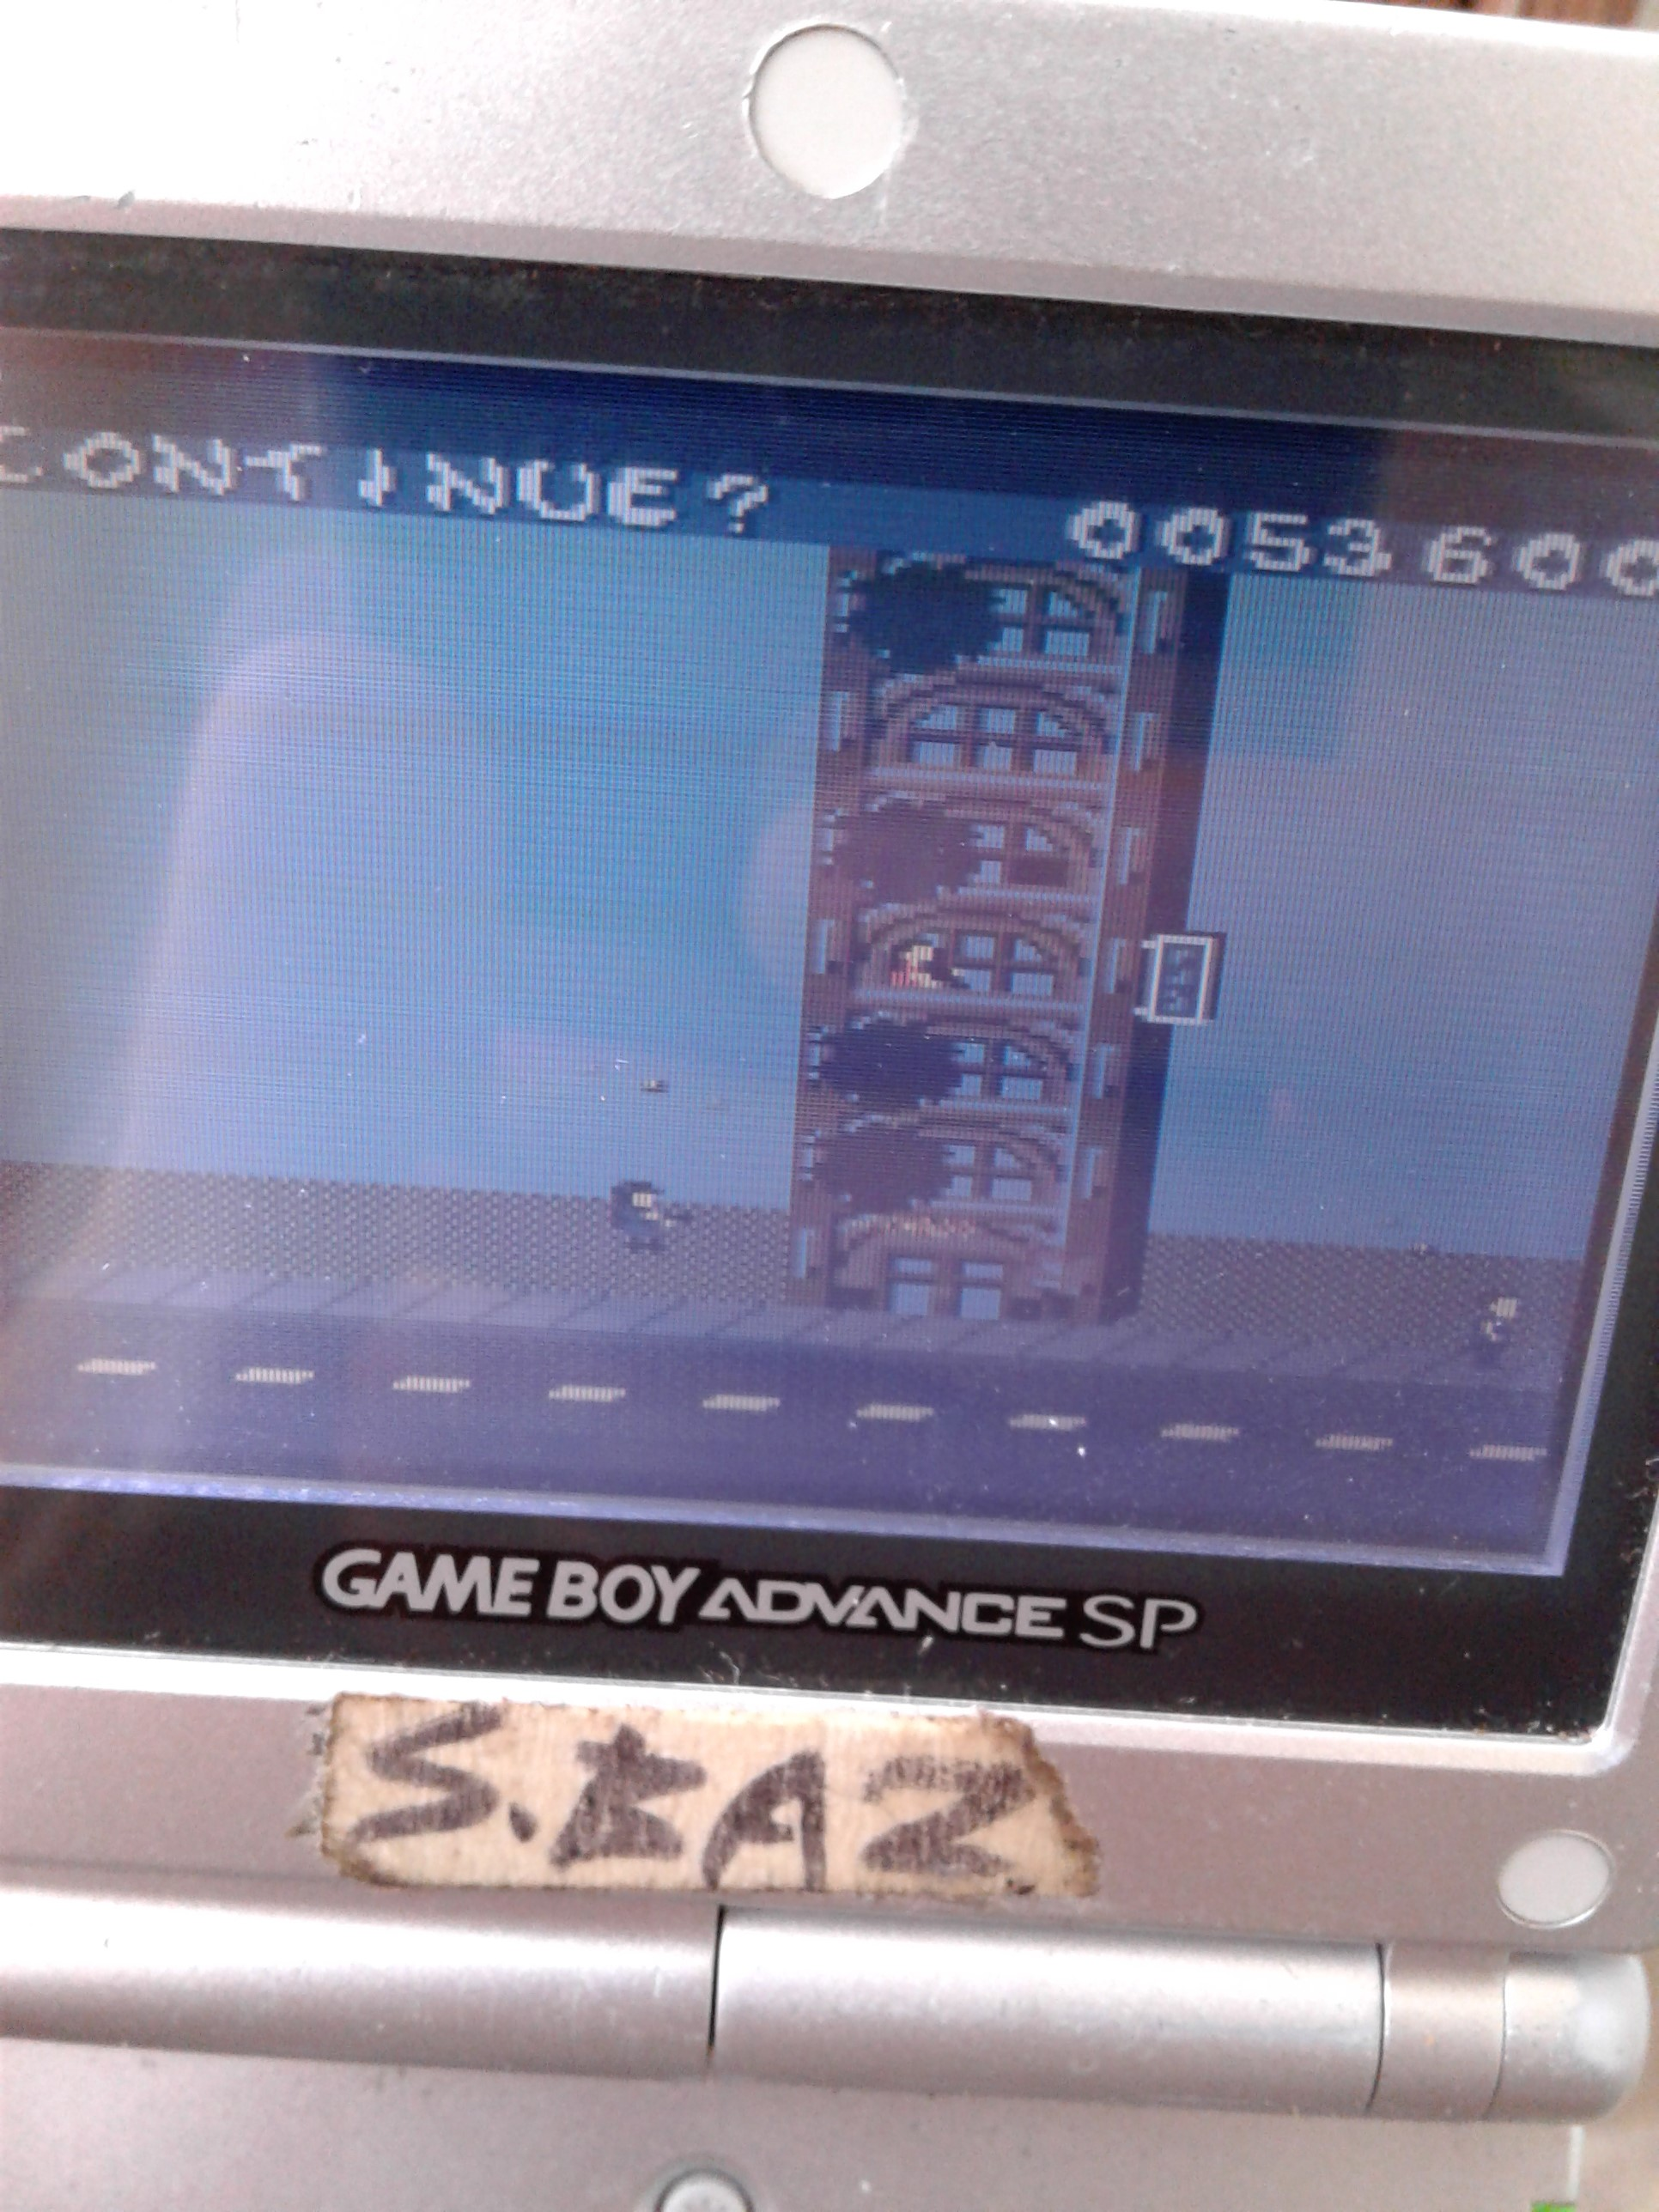 S.BAZ: Rampage 2: Universal Tour [Easy] (Game Boy Color) 53,600 points on 2019-11-22 04:19:43